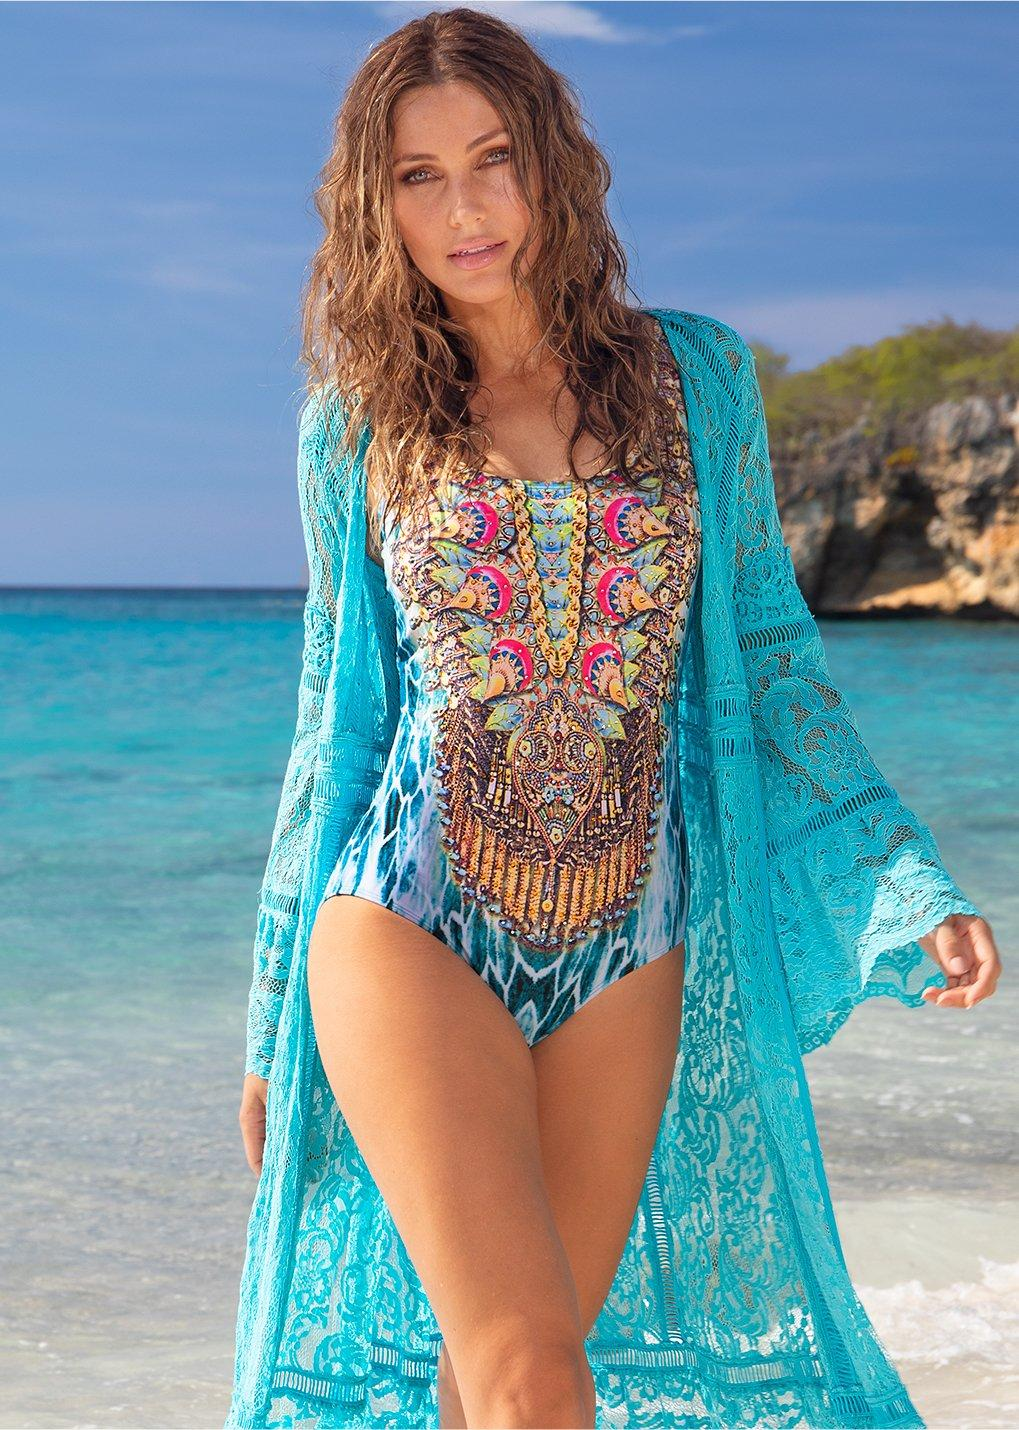 model wearing embellished one-piece swimsuit and a teal duster while standing on the beach.